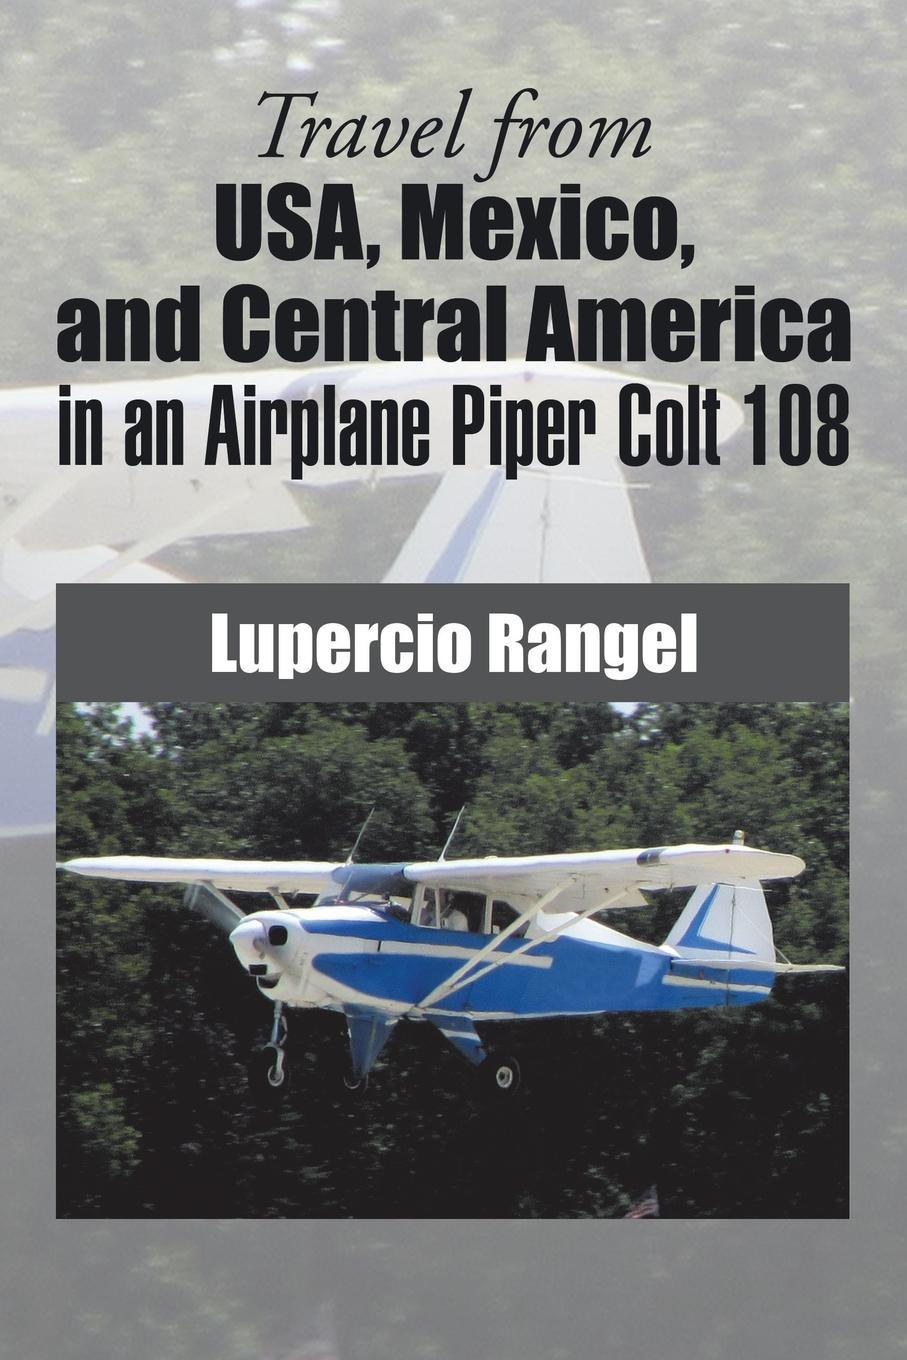 Lupercio Rangel Travel from USA, Mexico, and Central America in an Airplane Piper Colt 108